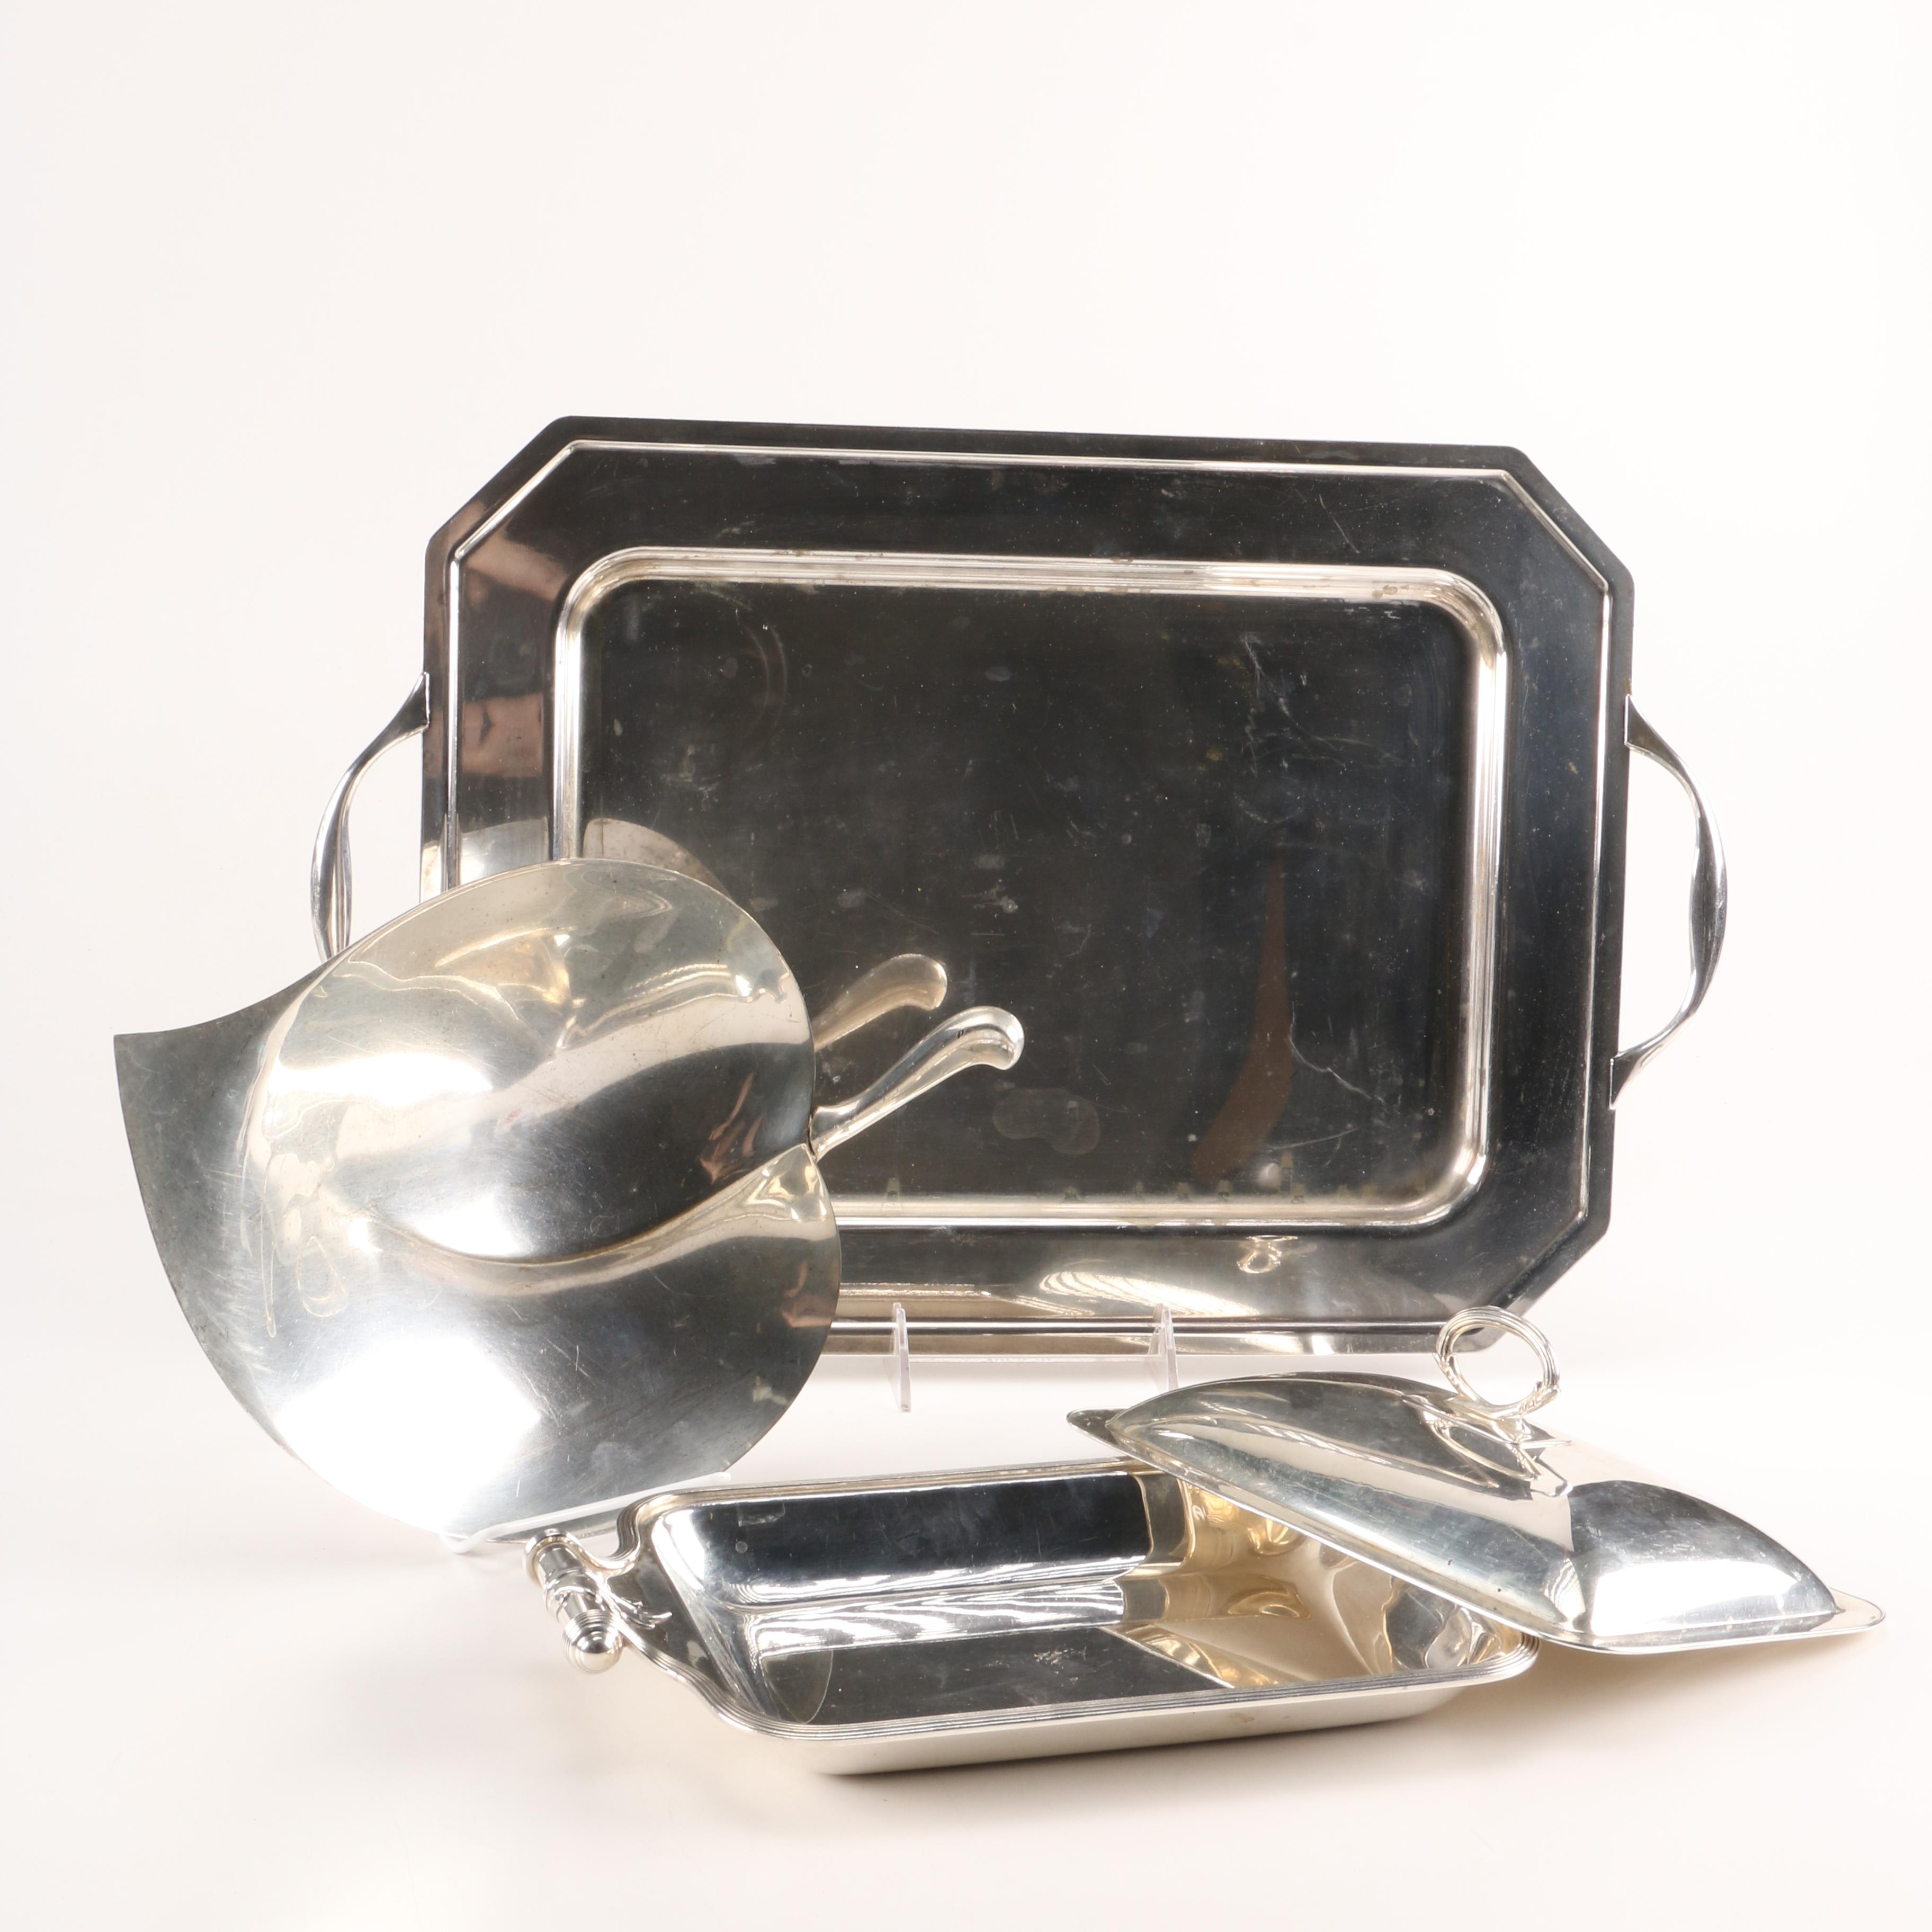 Collection of Plated Silver and Silver-Tone Serveware